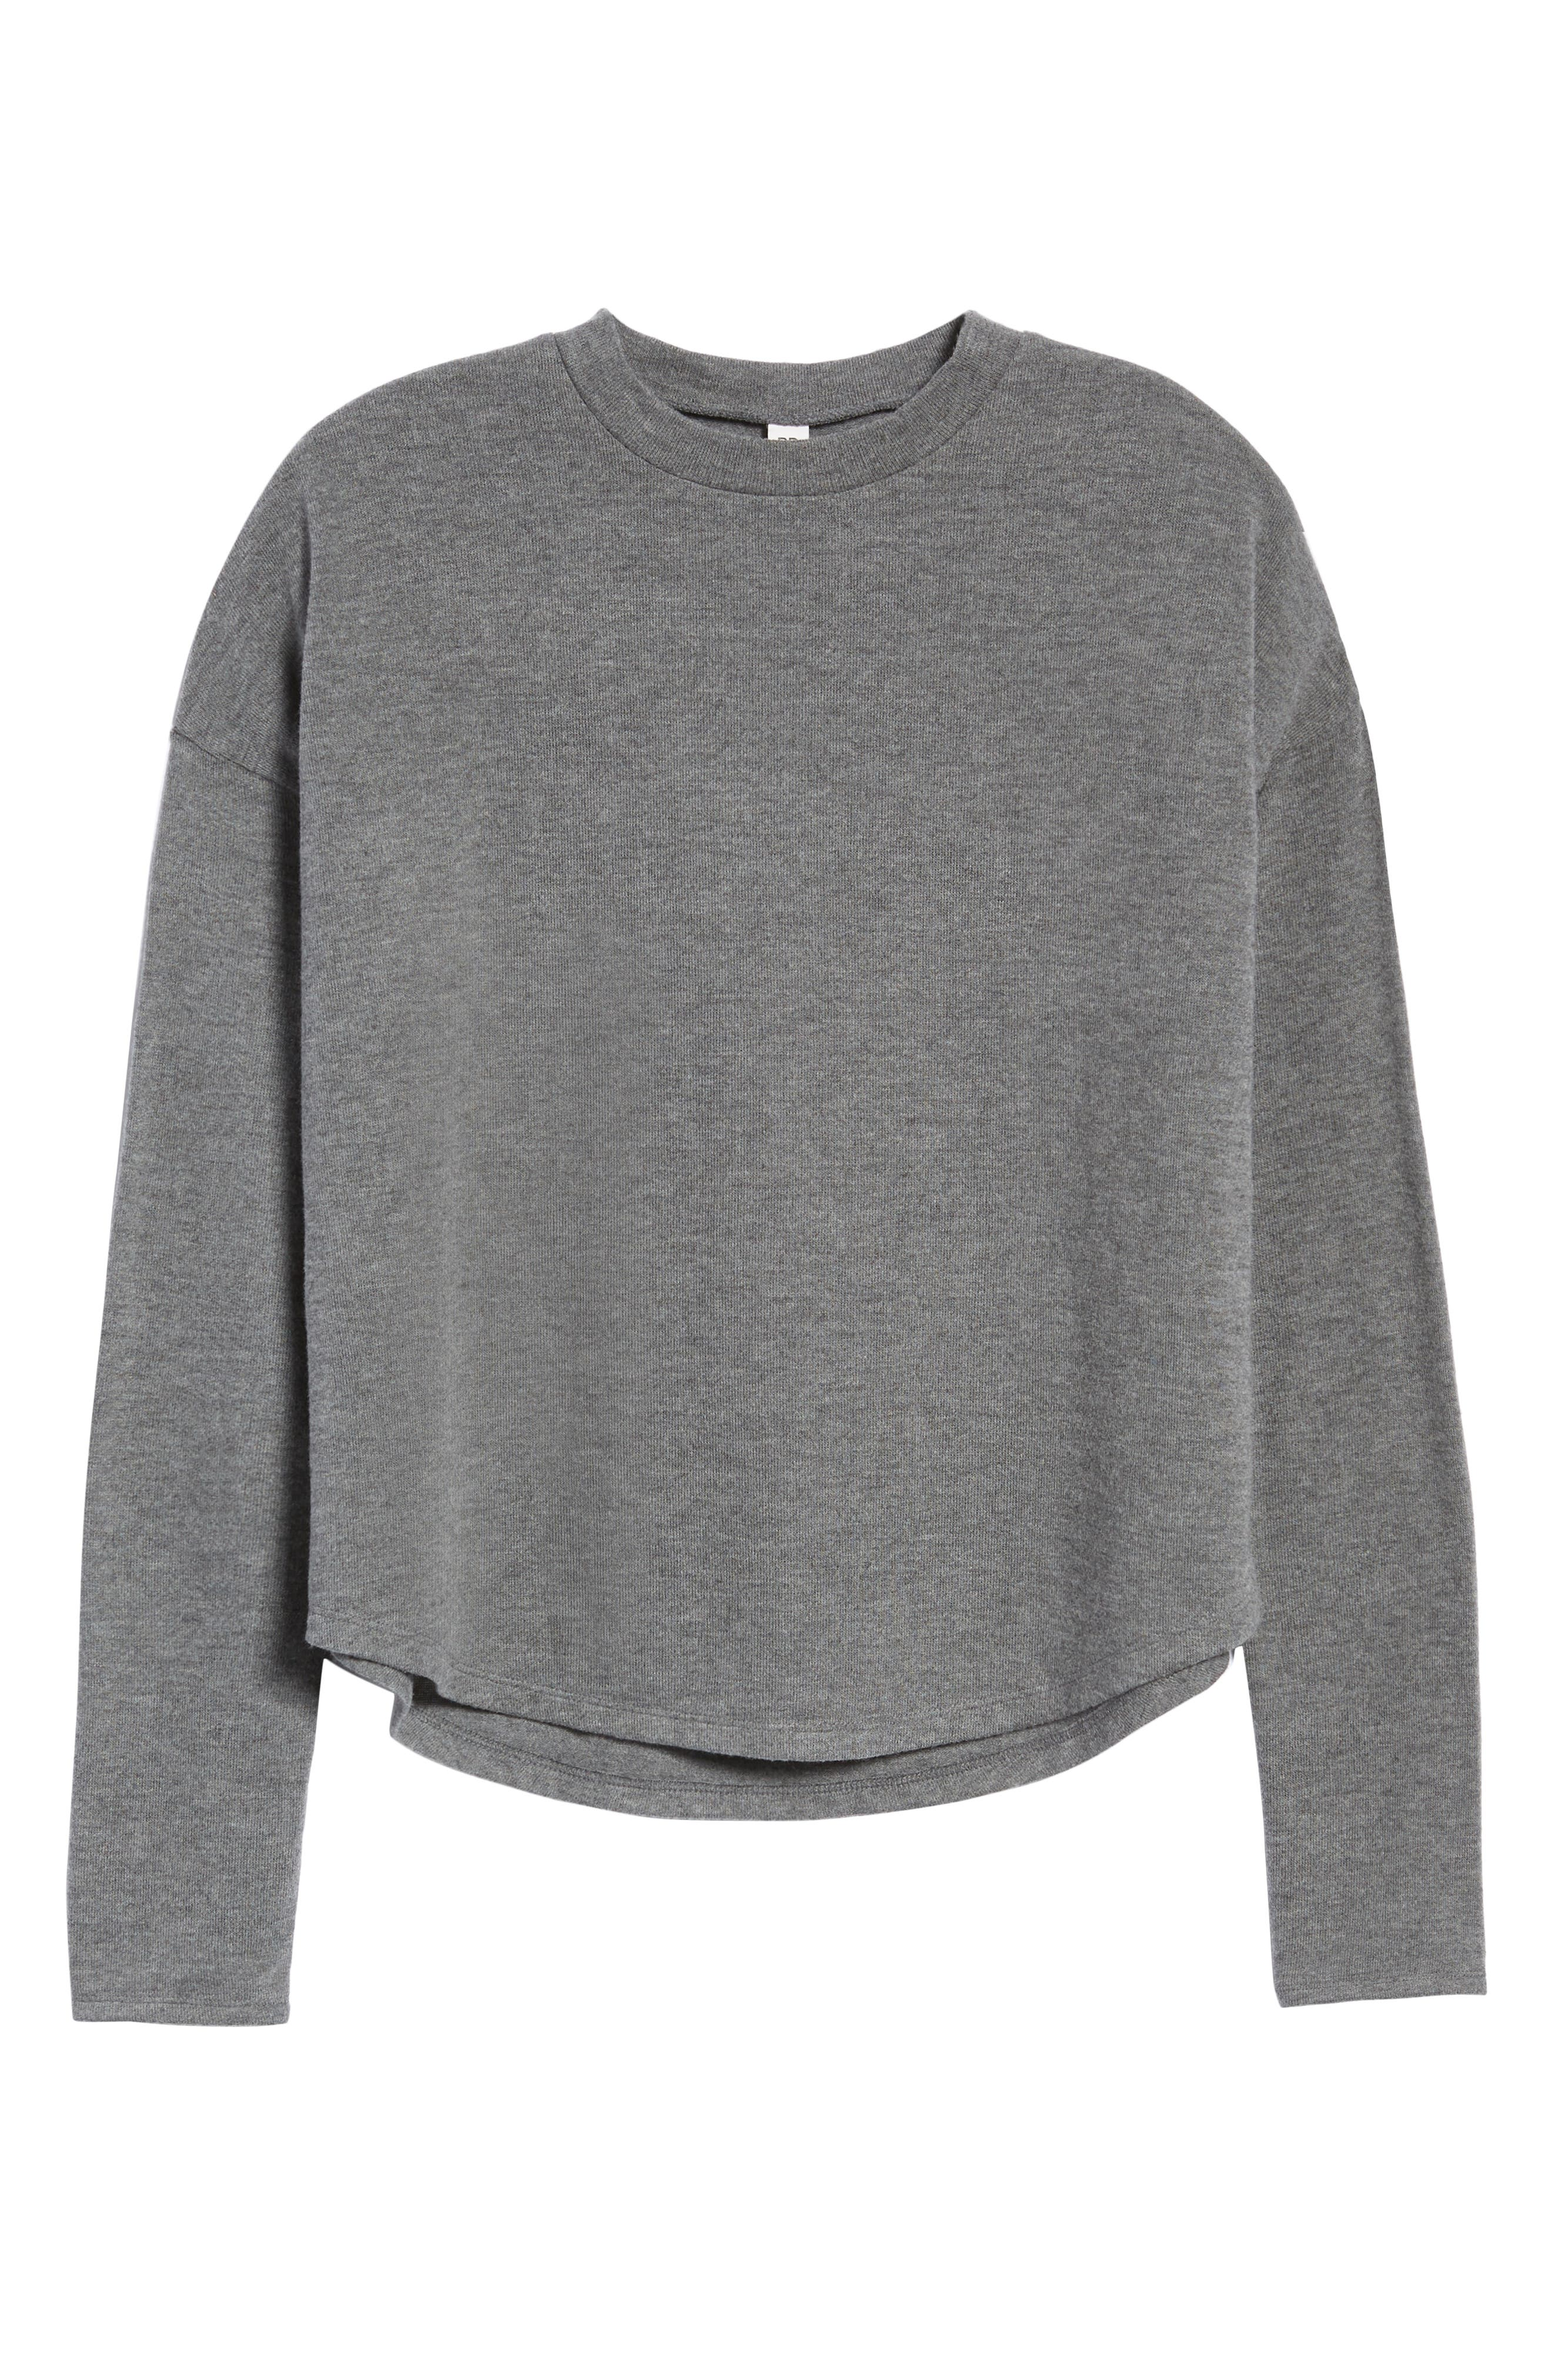 Drop Shoulder Tee,                             Alternate thumbnail 6, color,                             GREY CHARCOAL HEATHER